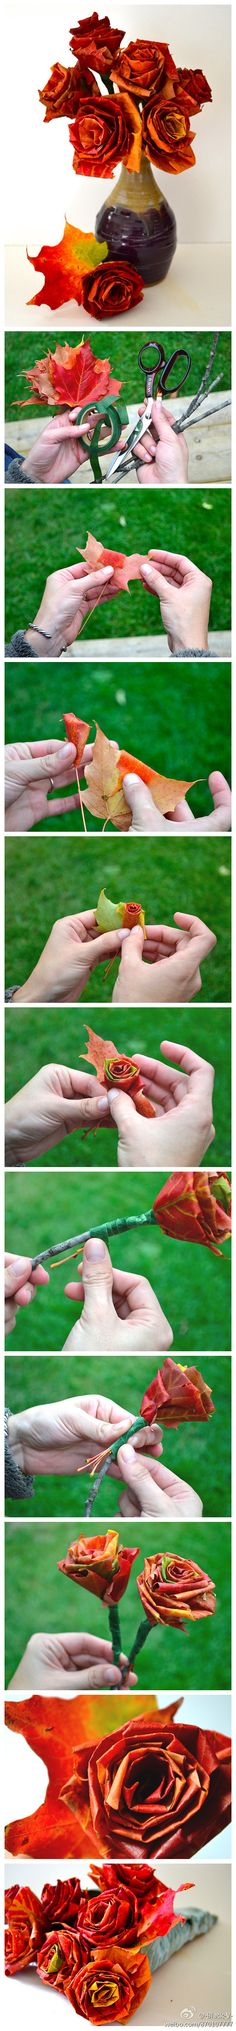 Leaf Roses this is so cute